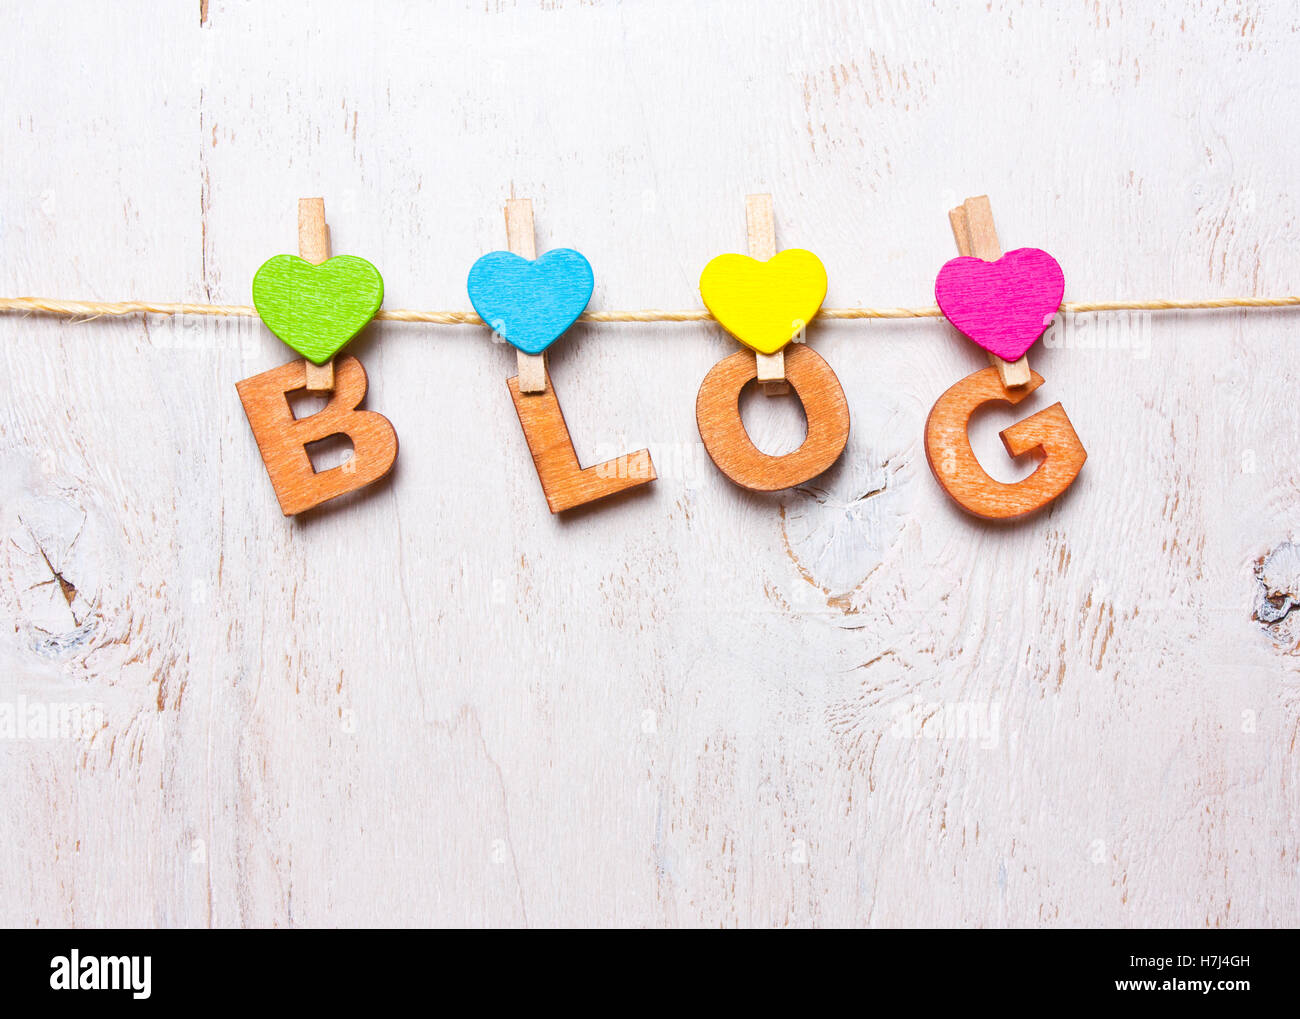 the word 'blog' of wooden letters on a white background - Stock Image